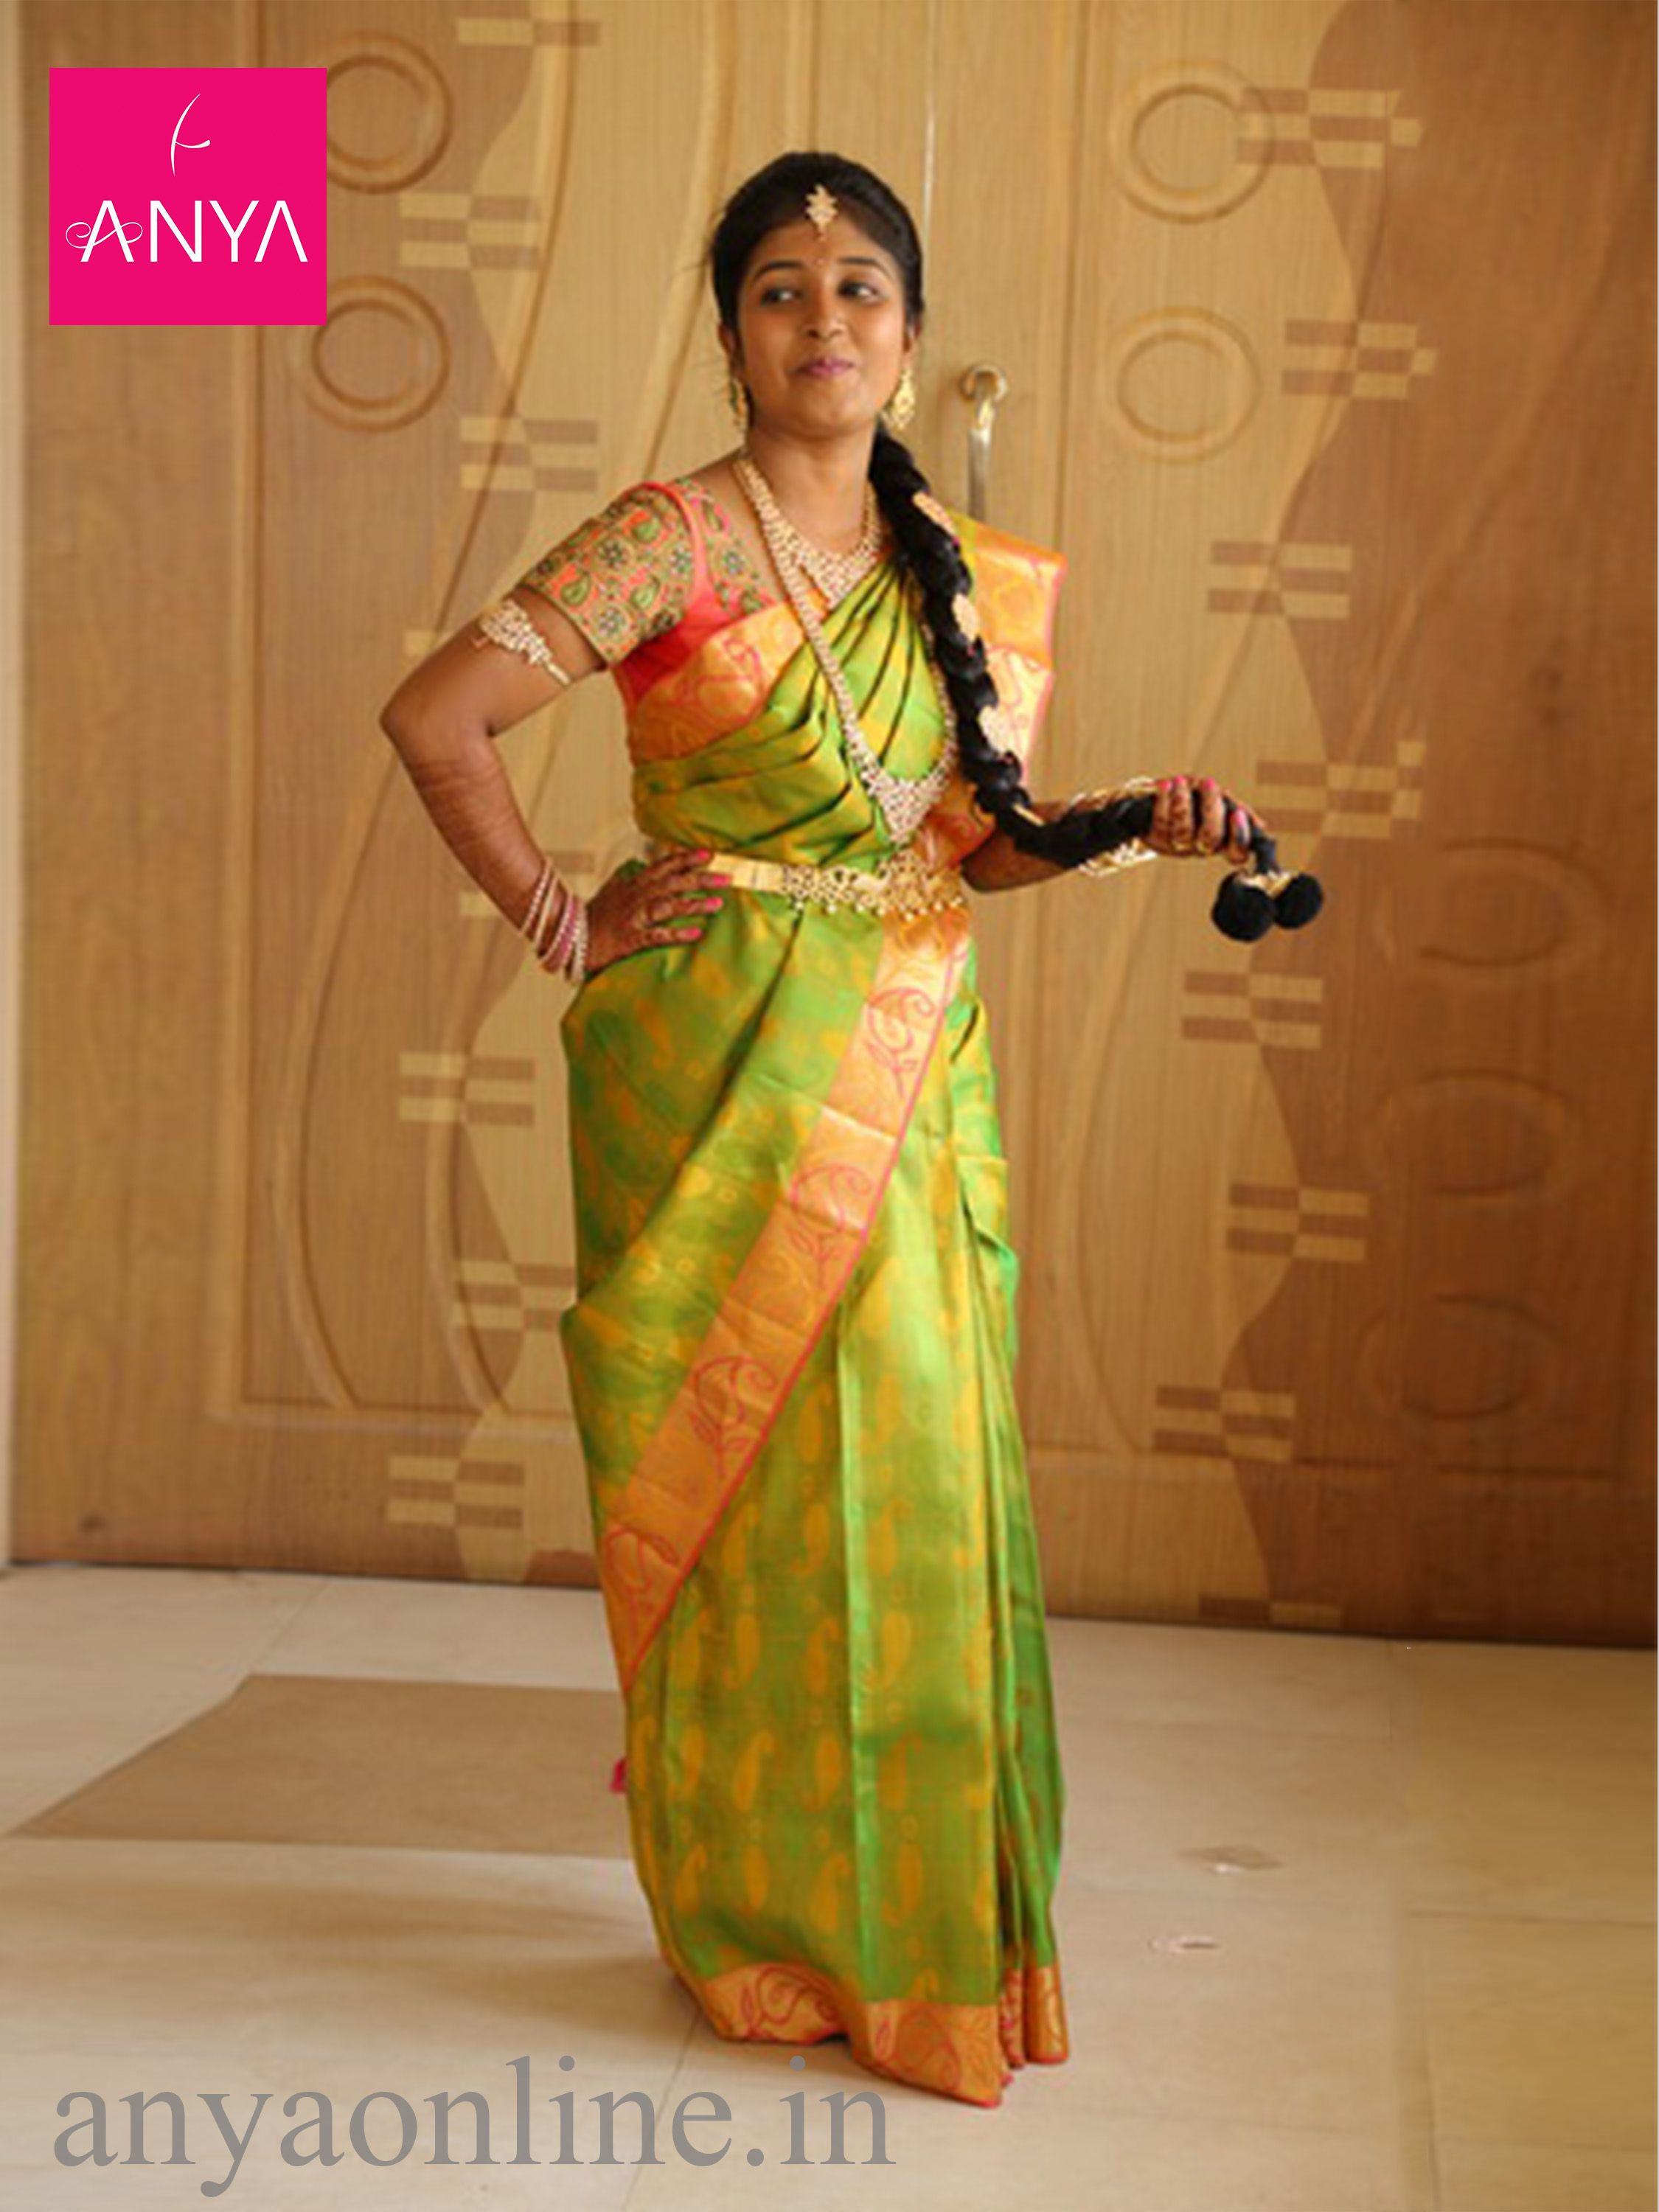 da60fec4b9 Latest Wedding Designer Blouses Coimbatore Anya customizes the best  collection of bridal blouses coimbatore